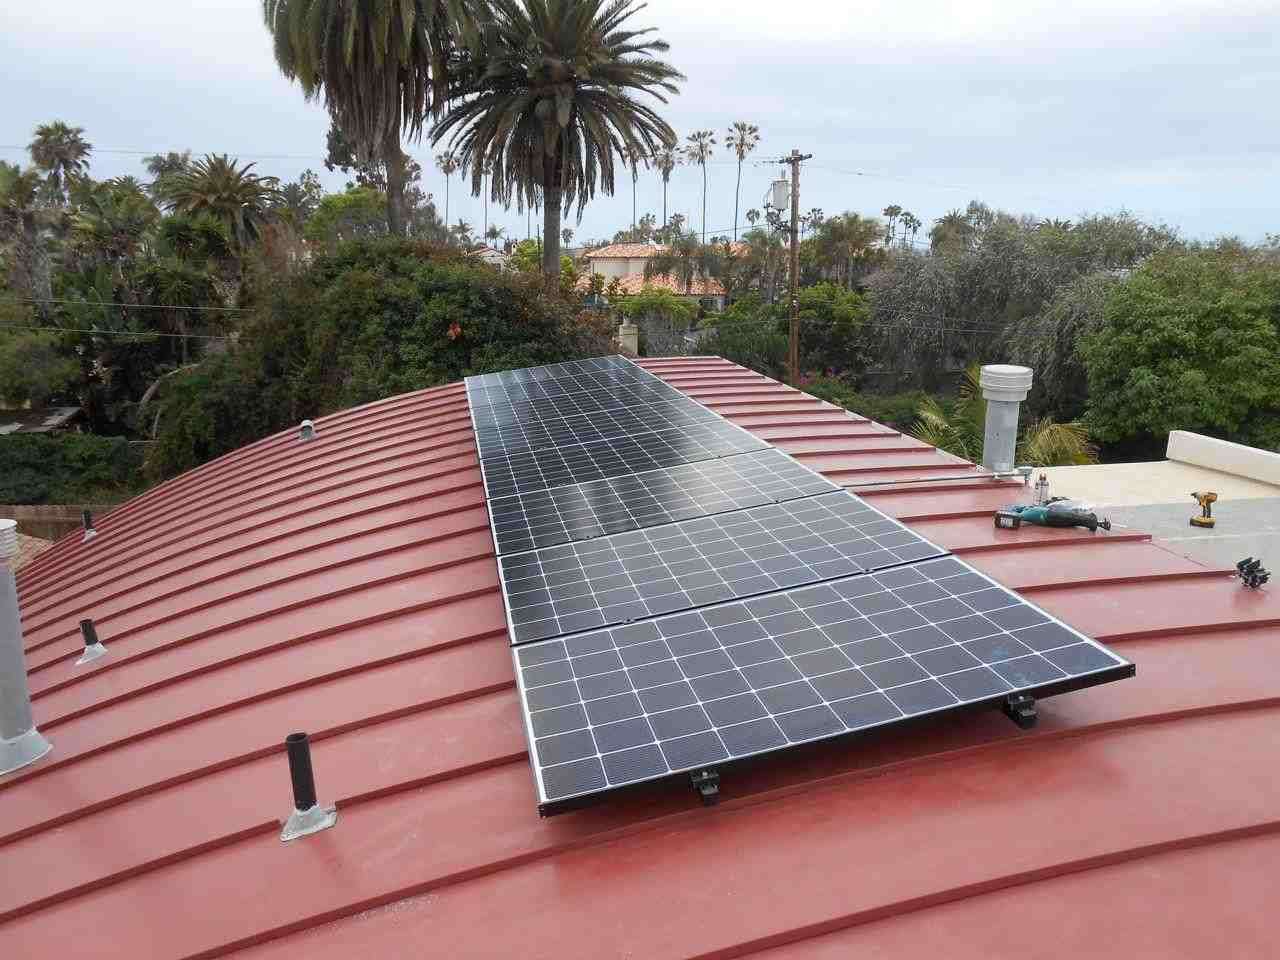 How do I qualify for free solar in California?